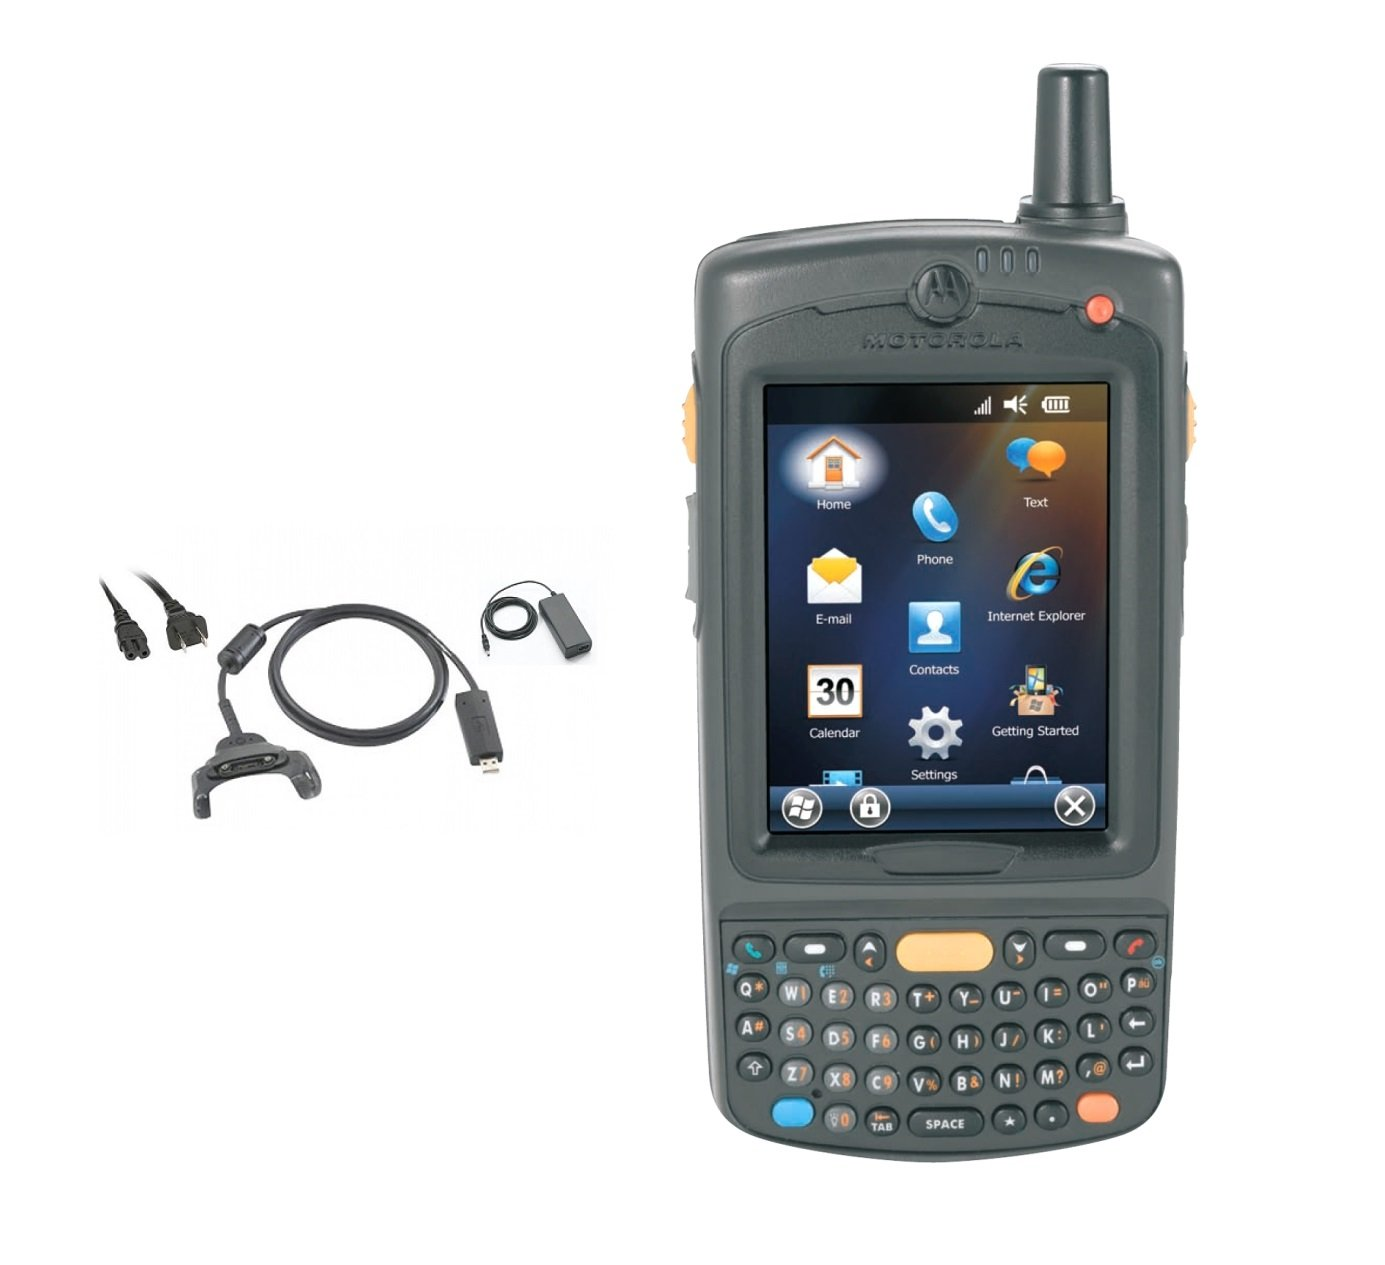 Symbol MC75 Wireless Handheld Kit 2D 1D Barcode Scanner Wifi Gps Gsm Cell Windows Mobile 6.5 Charger